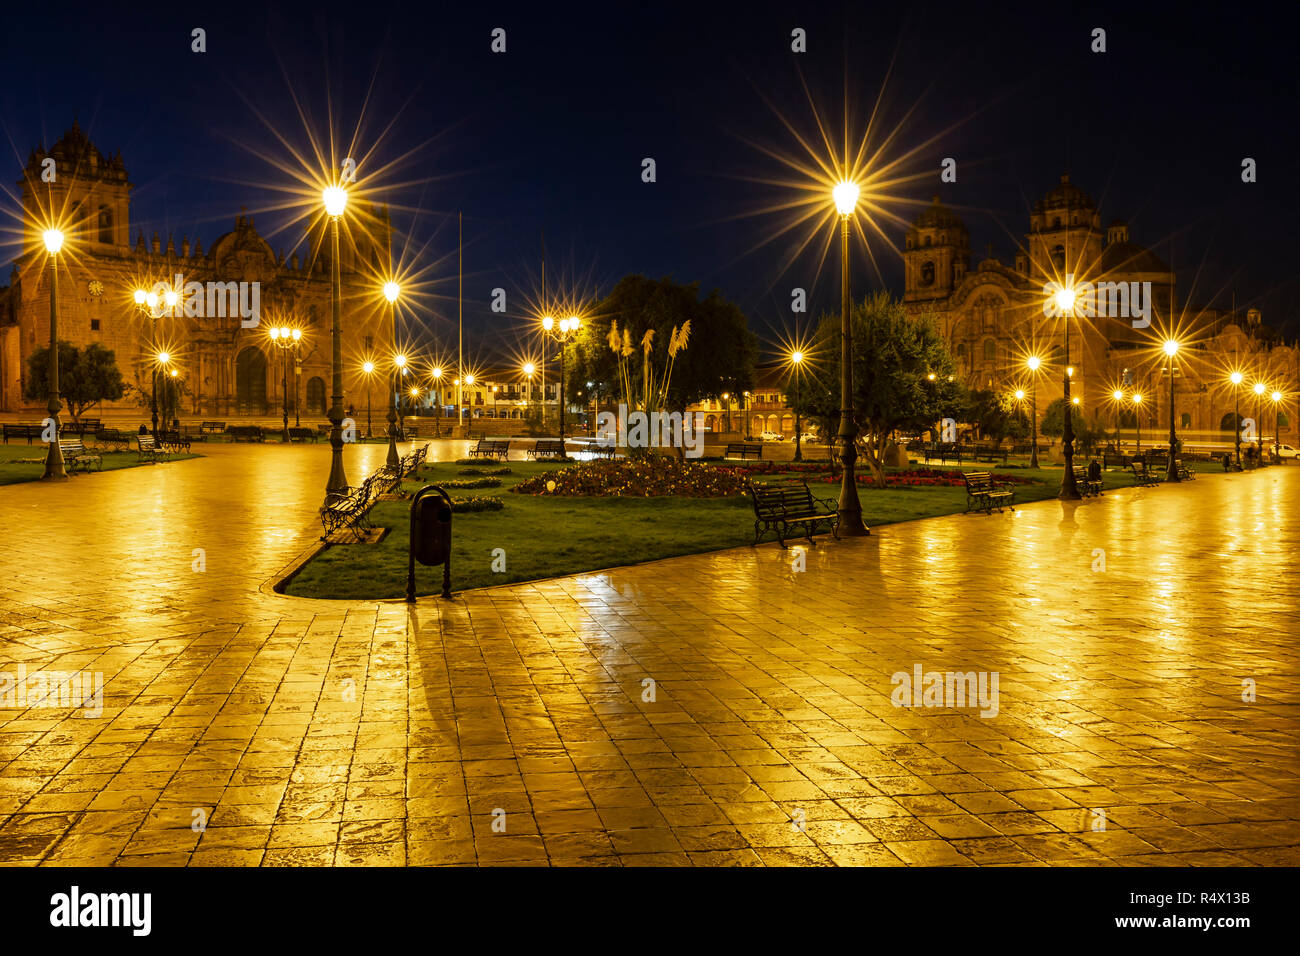 Cusco Cathedral (Cathedral Basilica of Our Lady of the Assumption), left, and La Compania de Jesus Church, right, Plaza de Armas, Cusco, Peru Stock Photo